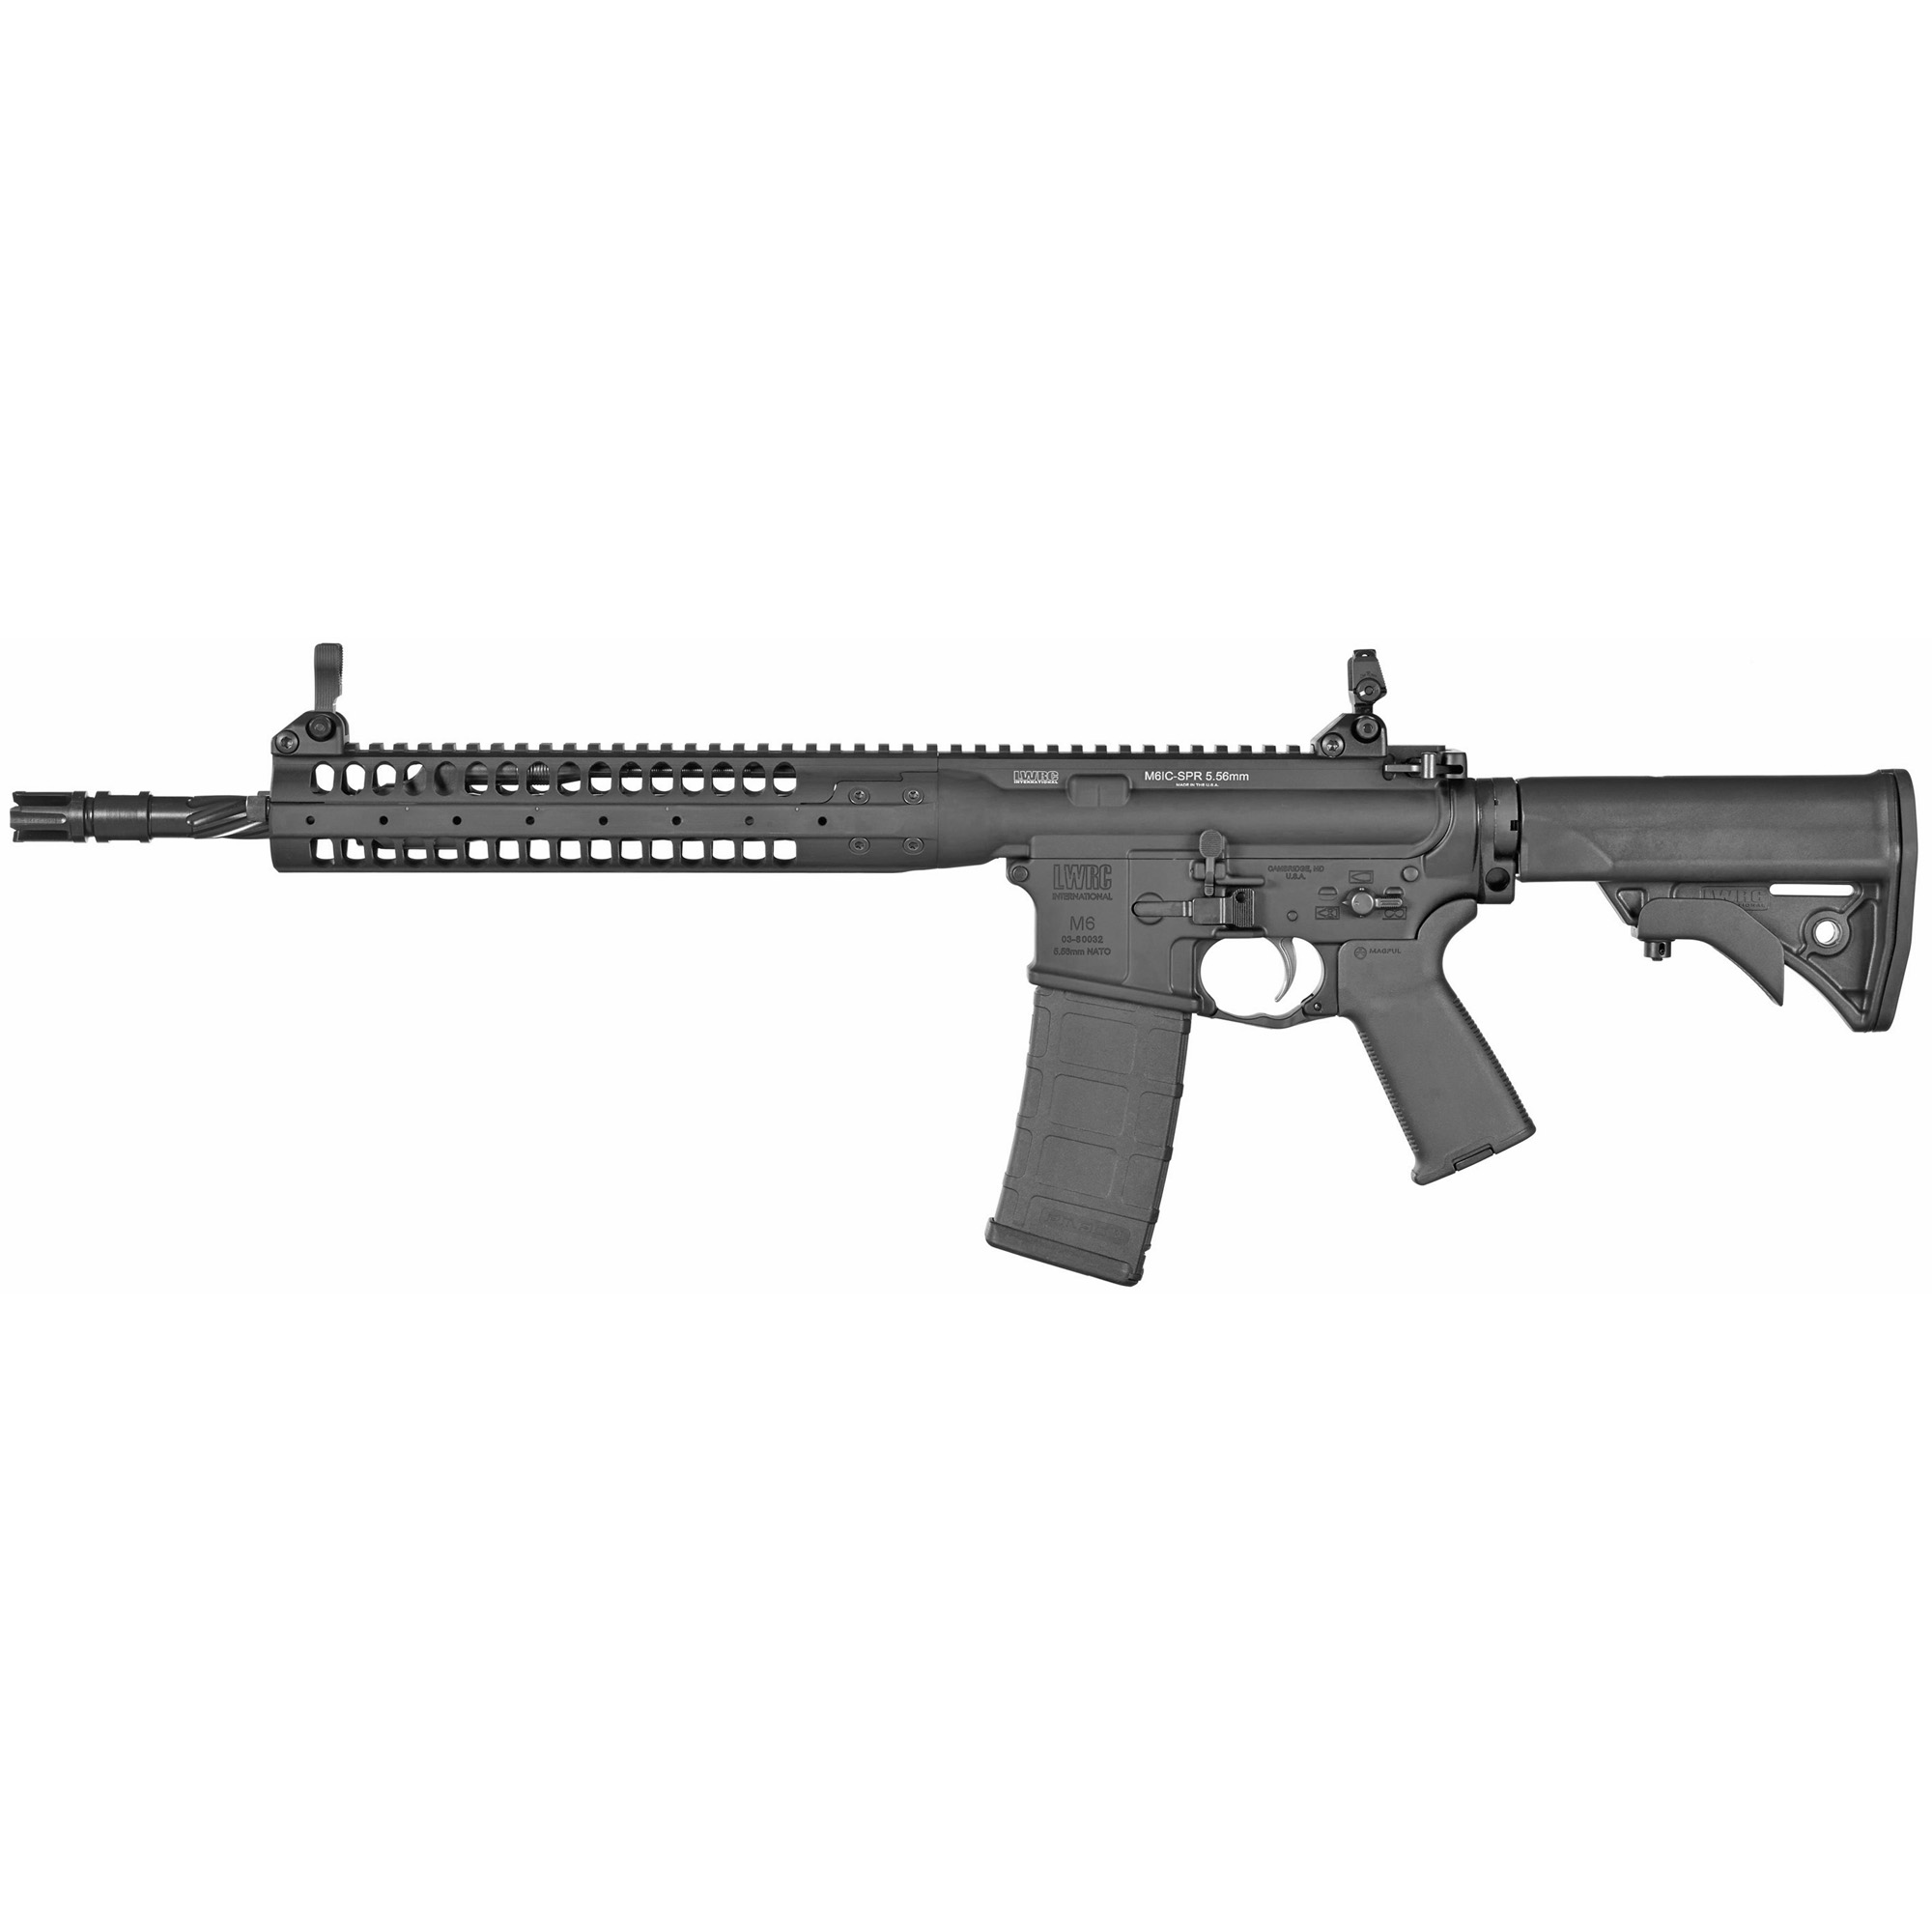 "Directly descended from the rifles developed by LWRCI(TM) to meet the requirements for the U.S. Army Individual Carbine program"" the IC-SPR is built for high performance."